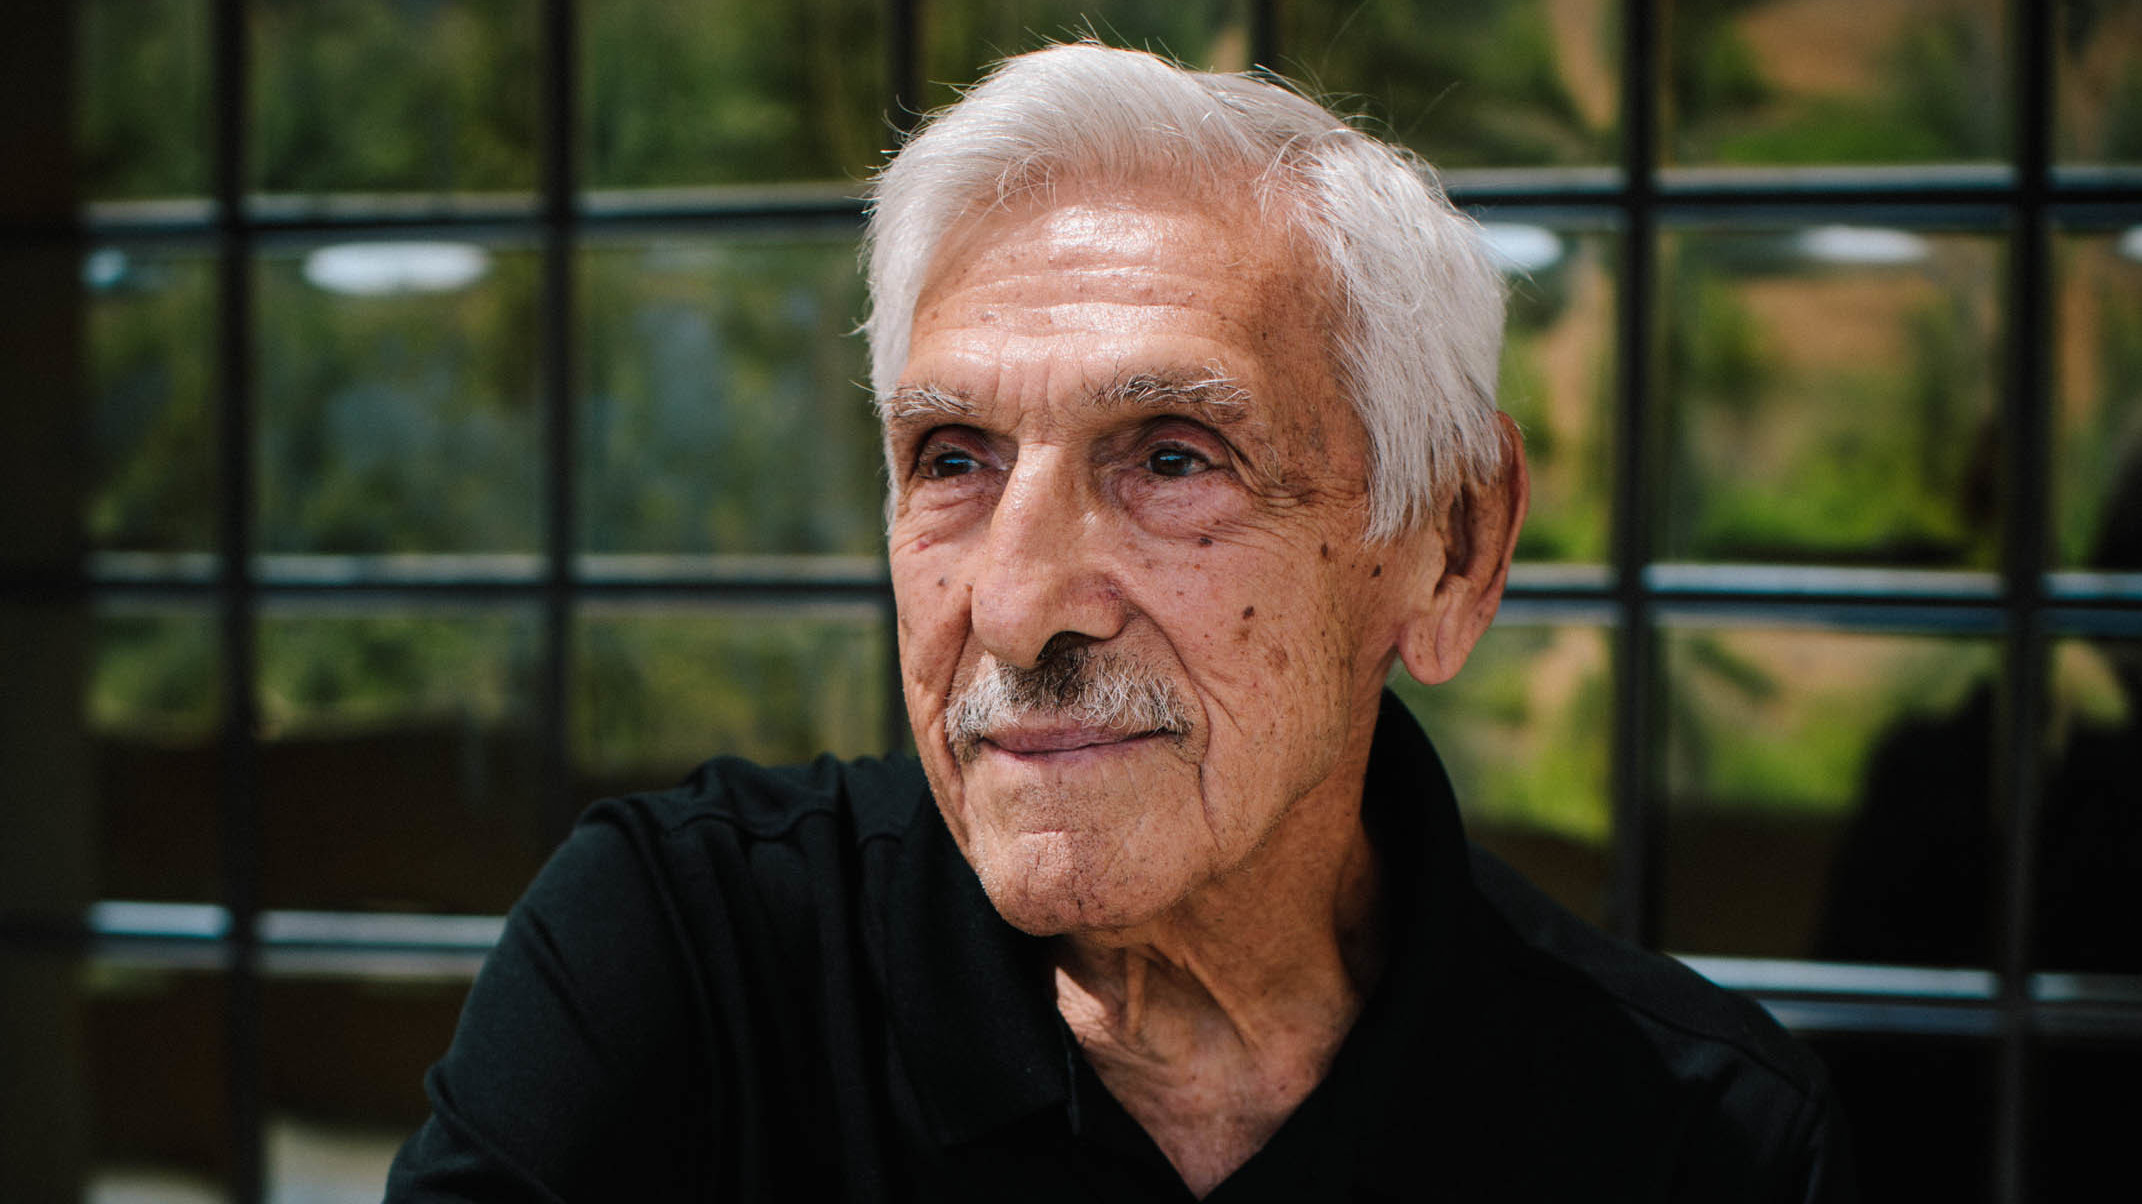 """Bob Orozco, 89, has been in fitness his entire adult life. He began working for the Laguna Niguel YMCA in 1984 and leads the Silver Sneakers Club, a free fitness program for Medicare beneficiaries. """"I probably will work until something stops me,"""" Orozco says."""